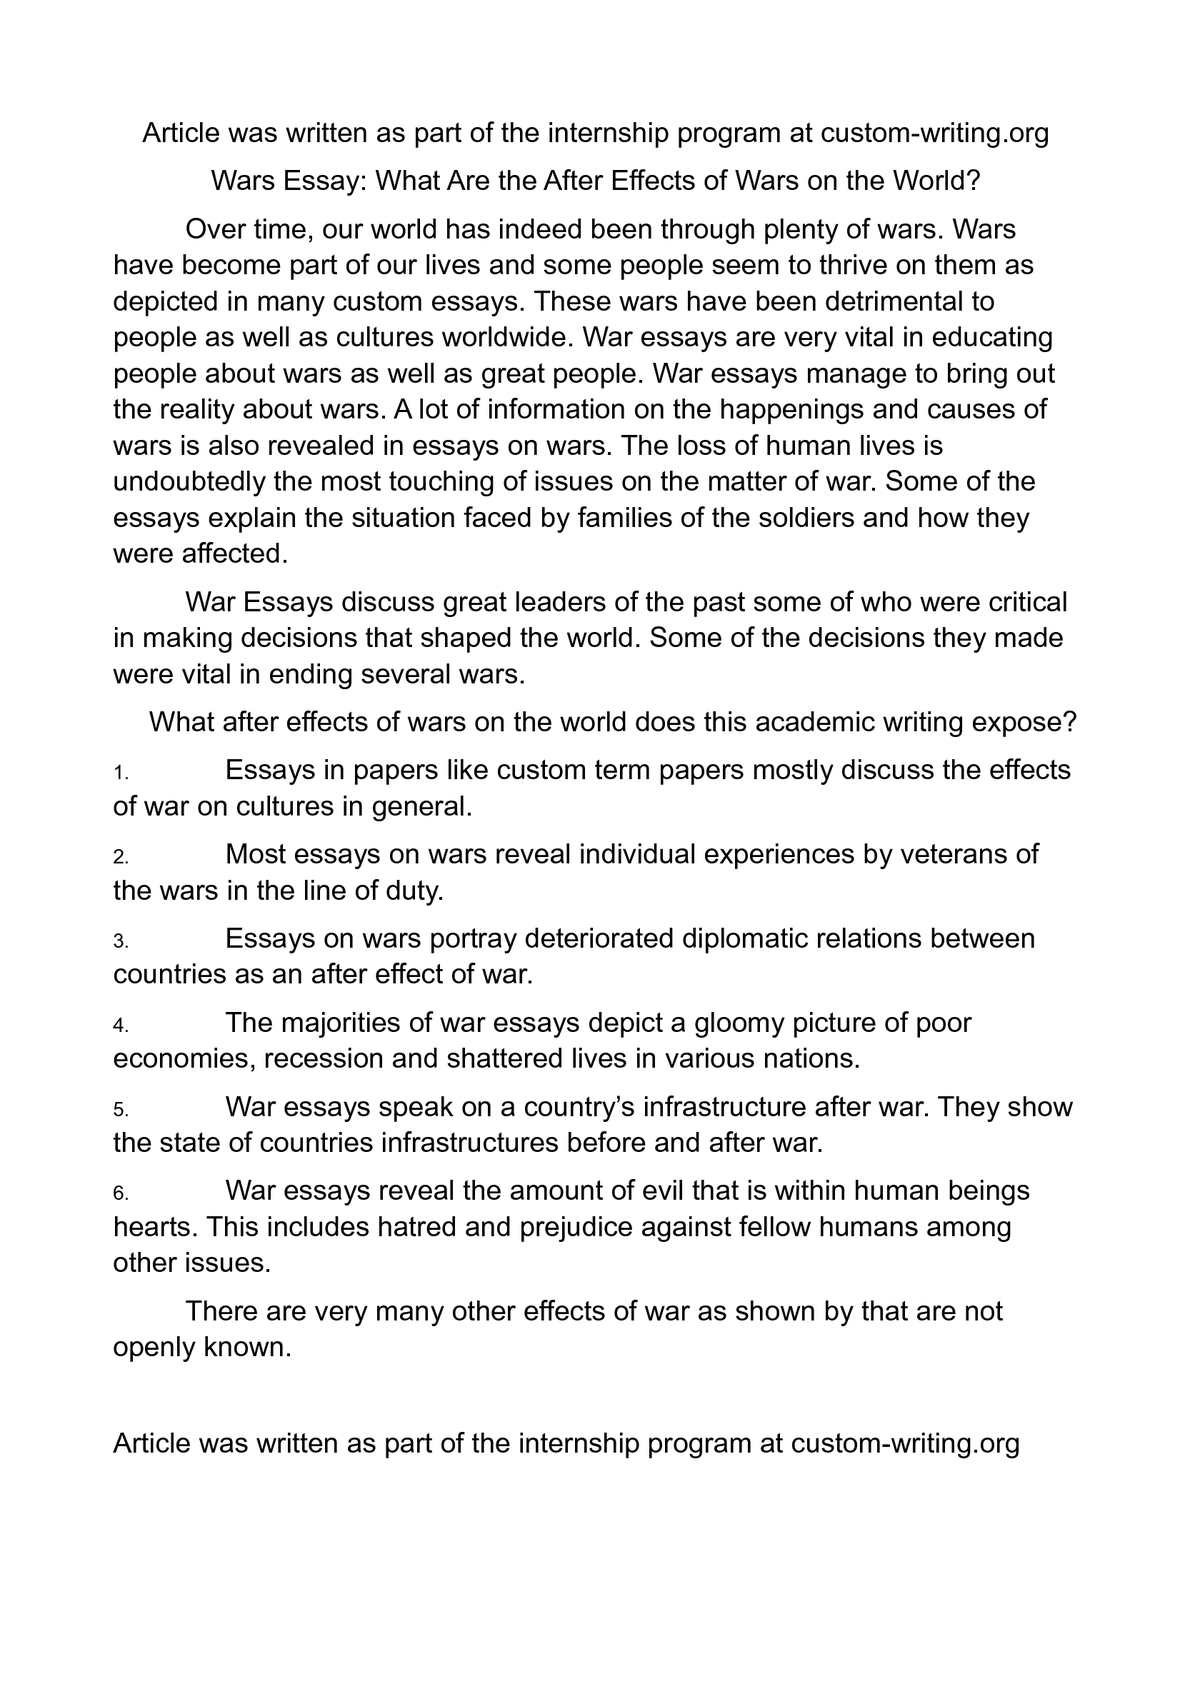 calam atilde copy o wars essay what are the after effects of wars on the world